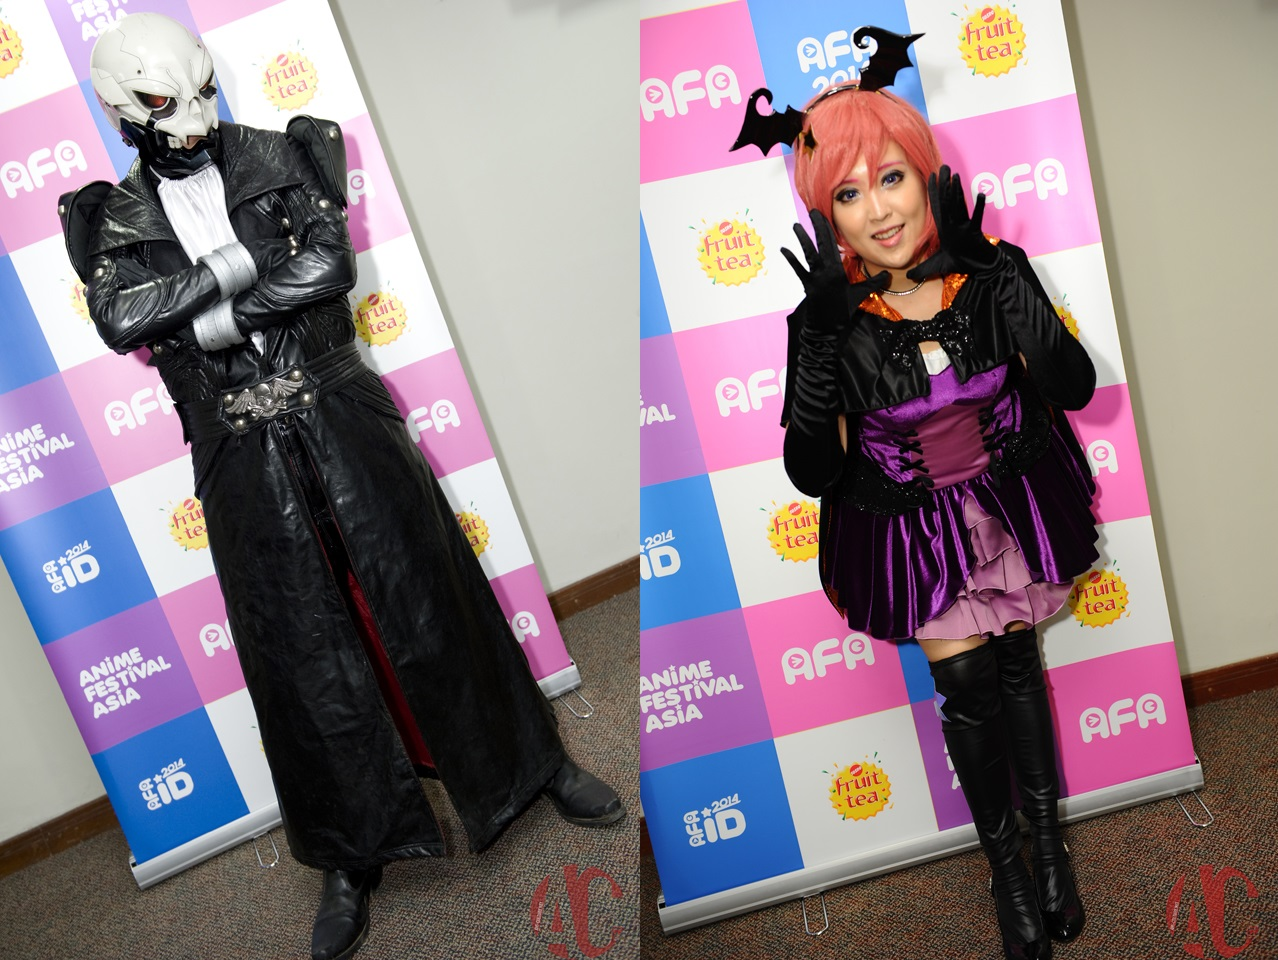 AFA ID 2014: Interview with Richfield and Pinky Lu Xun